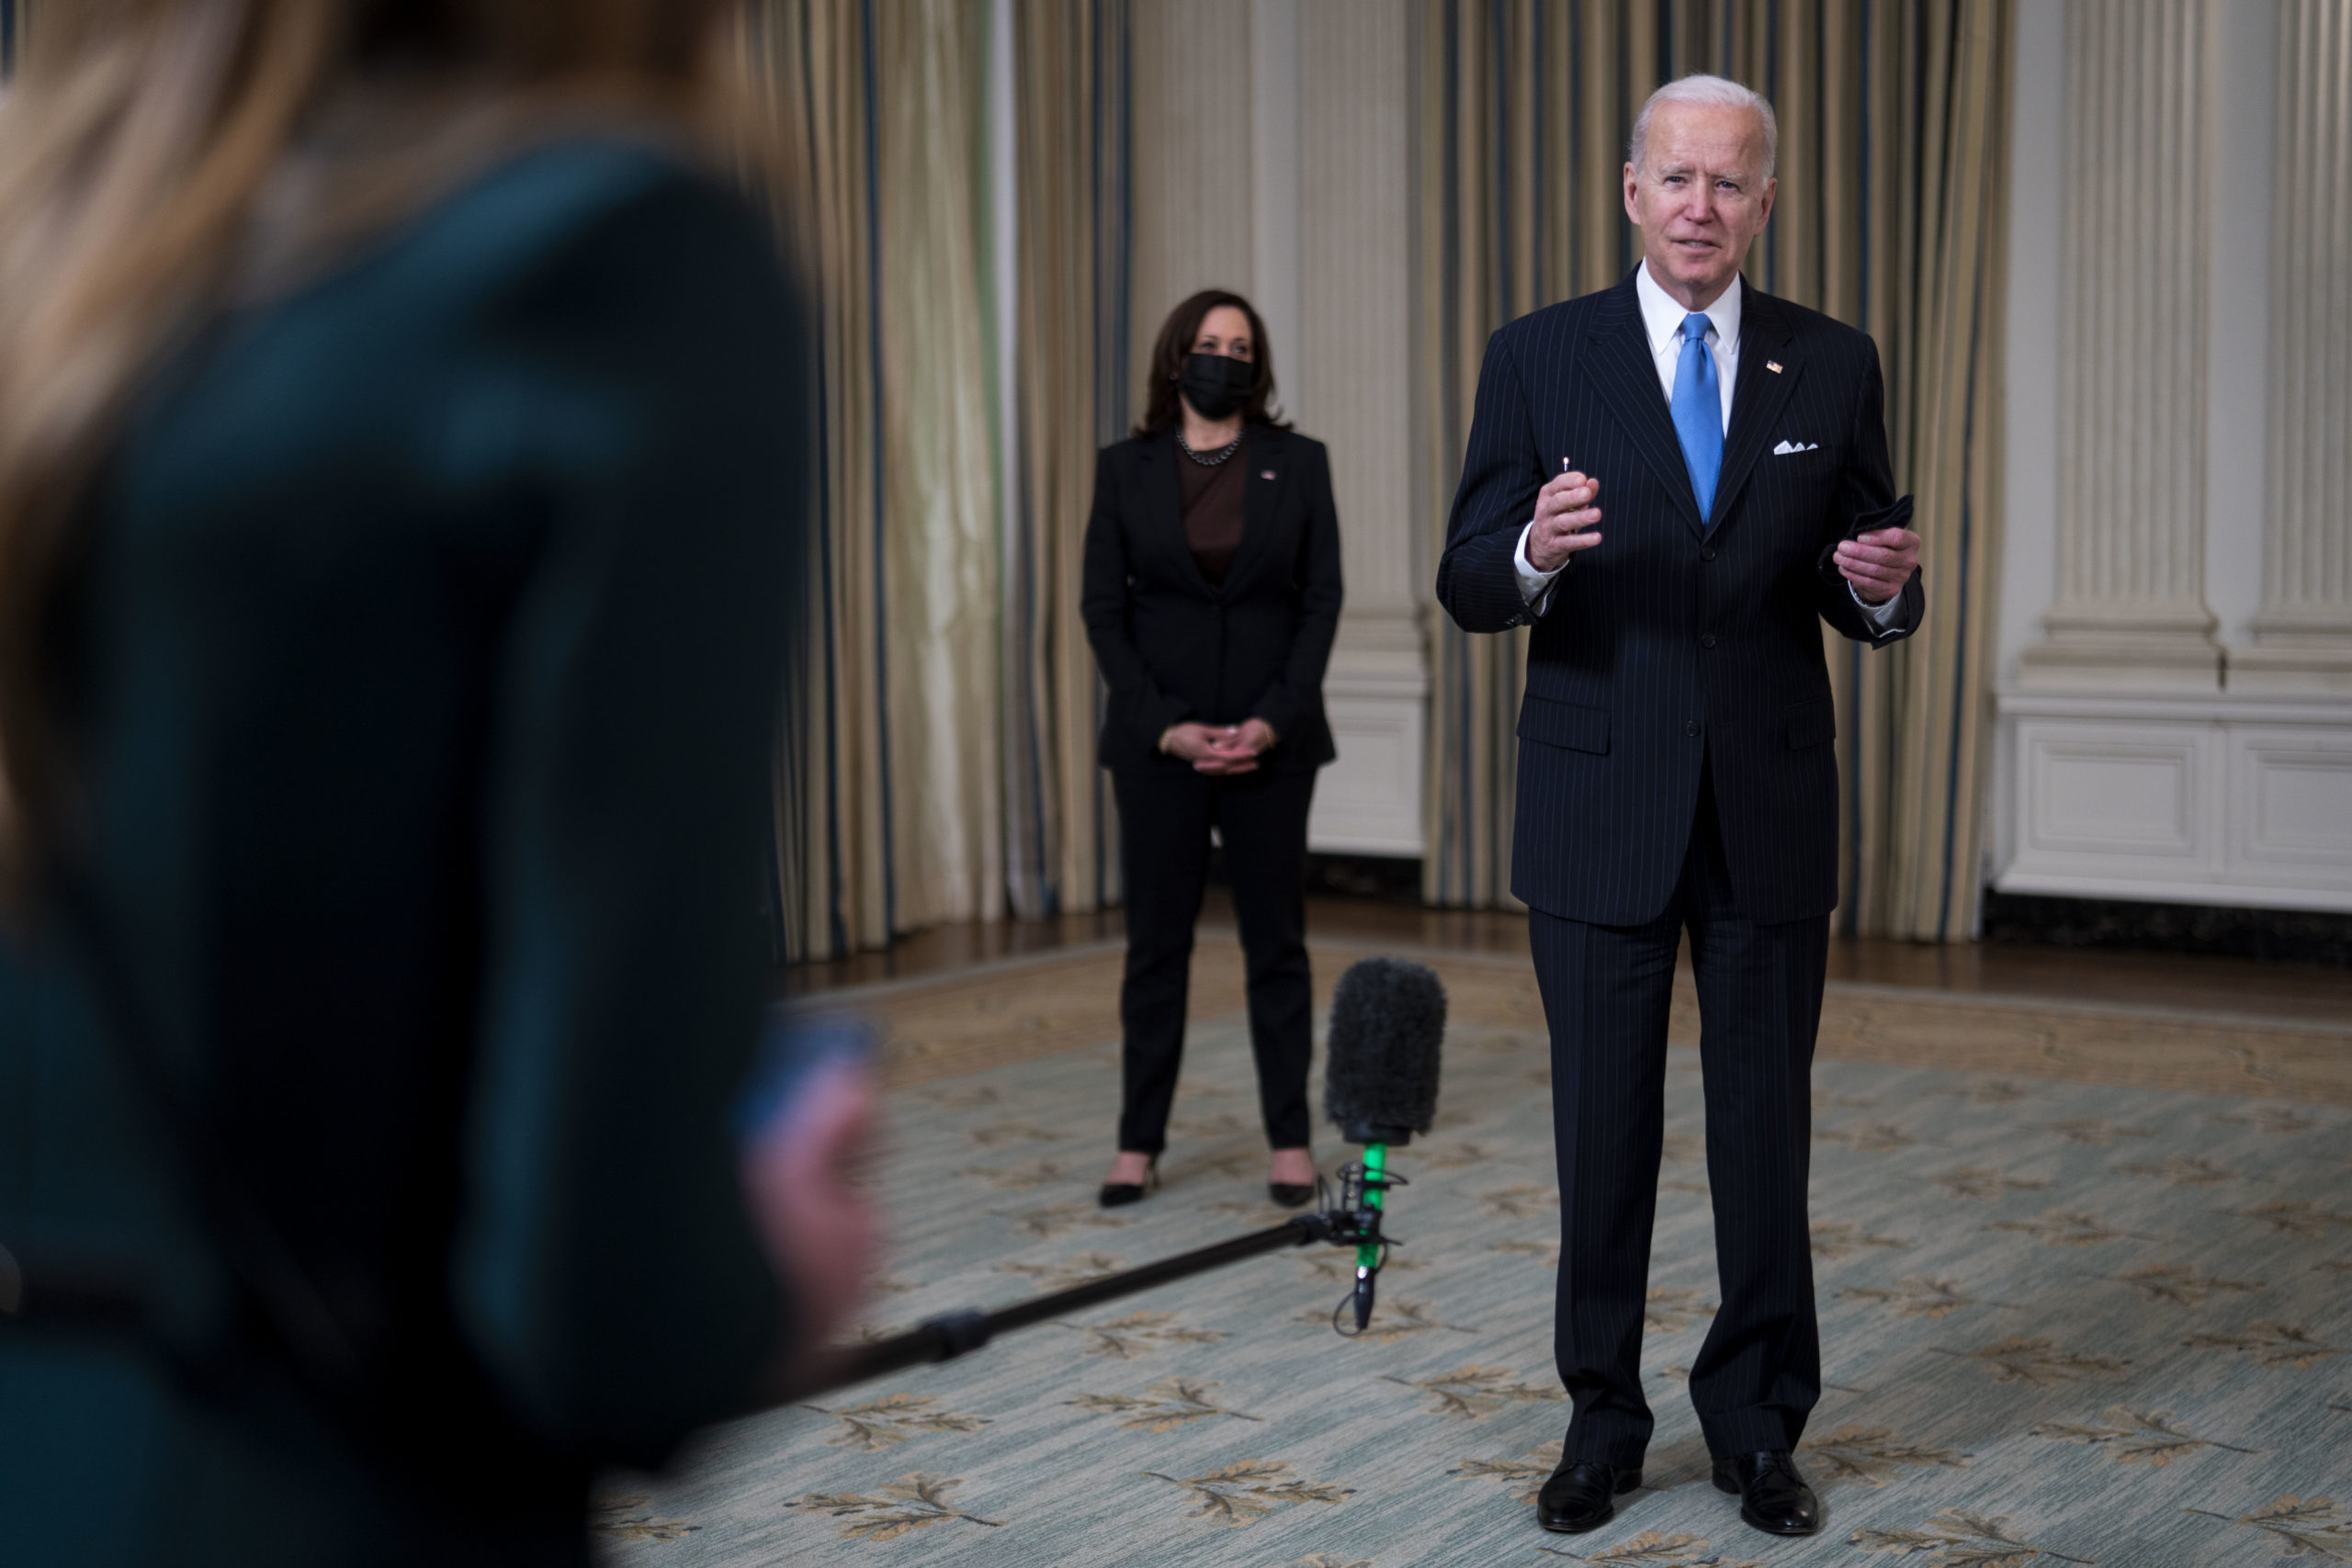 WASHINGTON, DC - MARCH 2: U.S. President Joe Biden briefly speaks to reporters after delivering remarks in the State Dining Room of the White House on March 2, 2021 in Washington, DC. President Biden spoke about the recently announced partnership between Johnson & Johnson and Merck to produce more J&J COVID-19 vaccine. (Photo by Doug Mills-Pool/Getty Images)